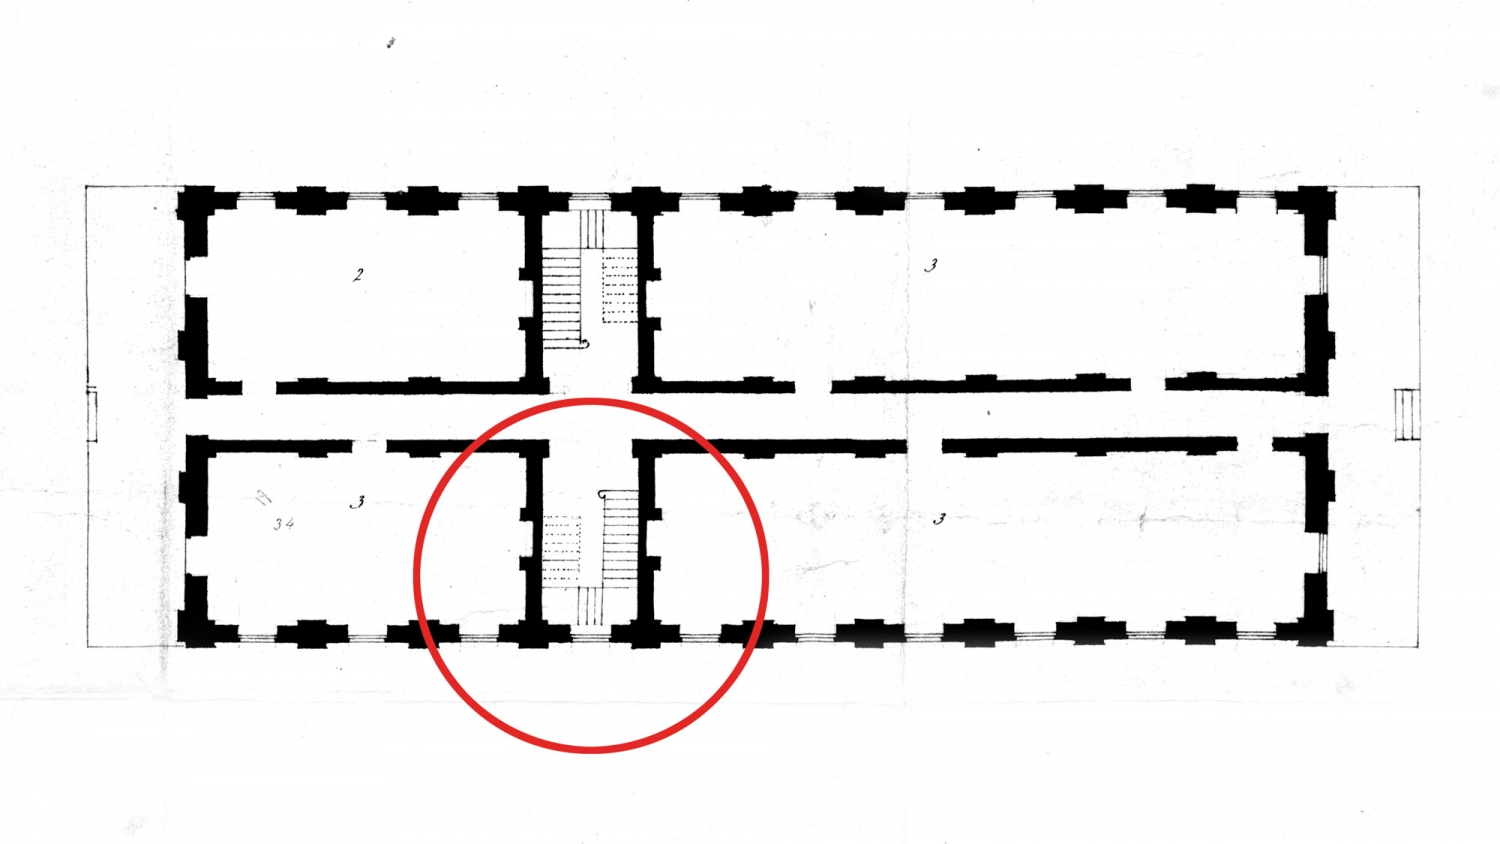 Plan of building with red circle superimposed over part of it.